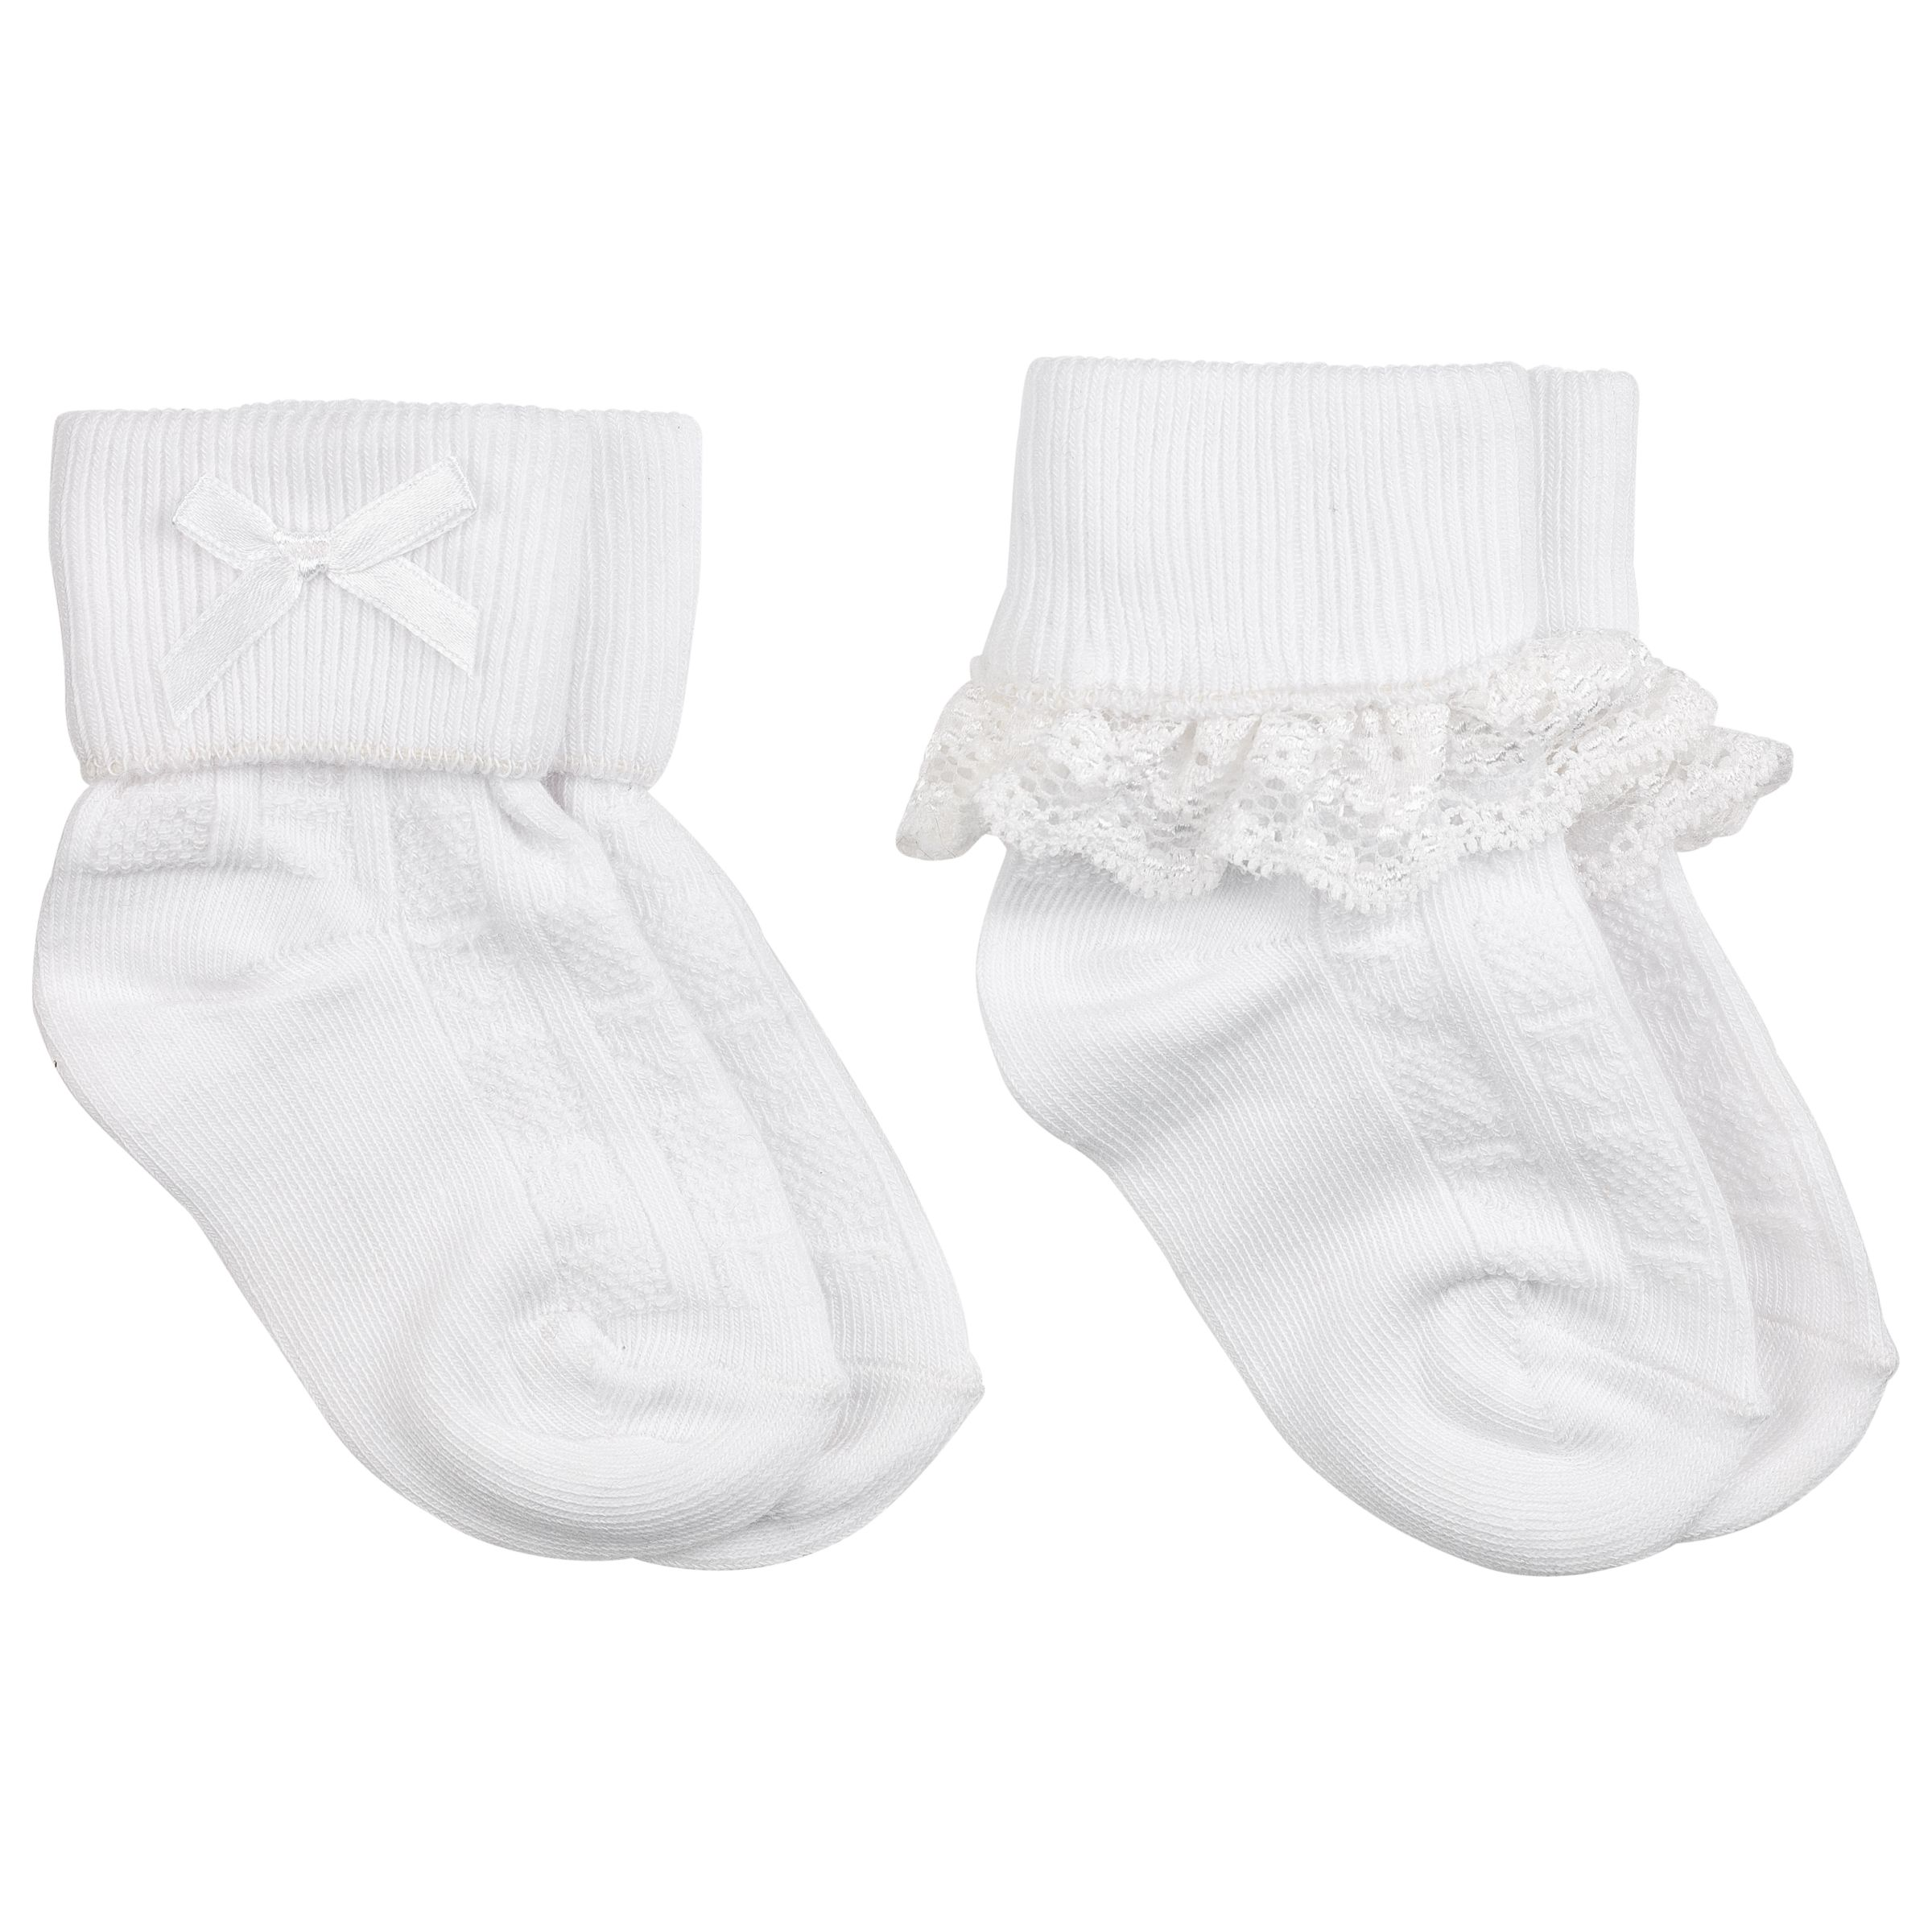 John Lewis Baby Lace Trim Socks, Pack of 2 43139